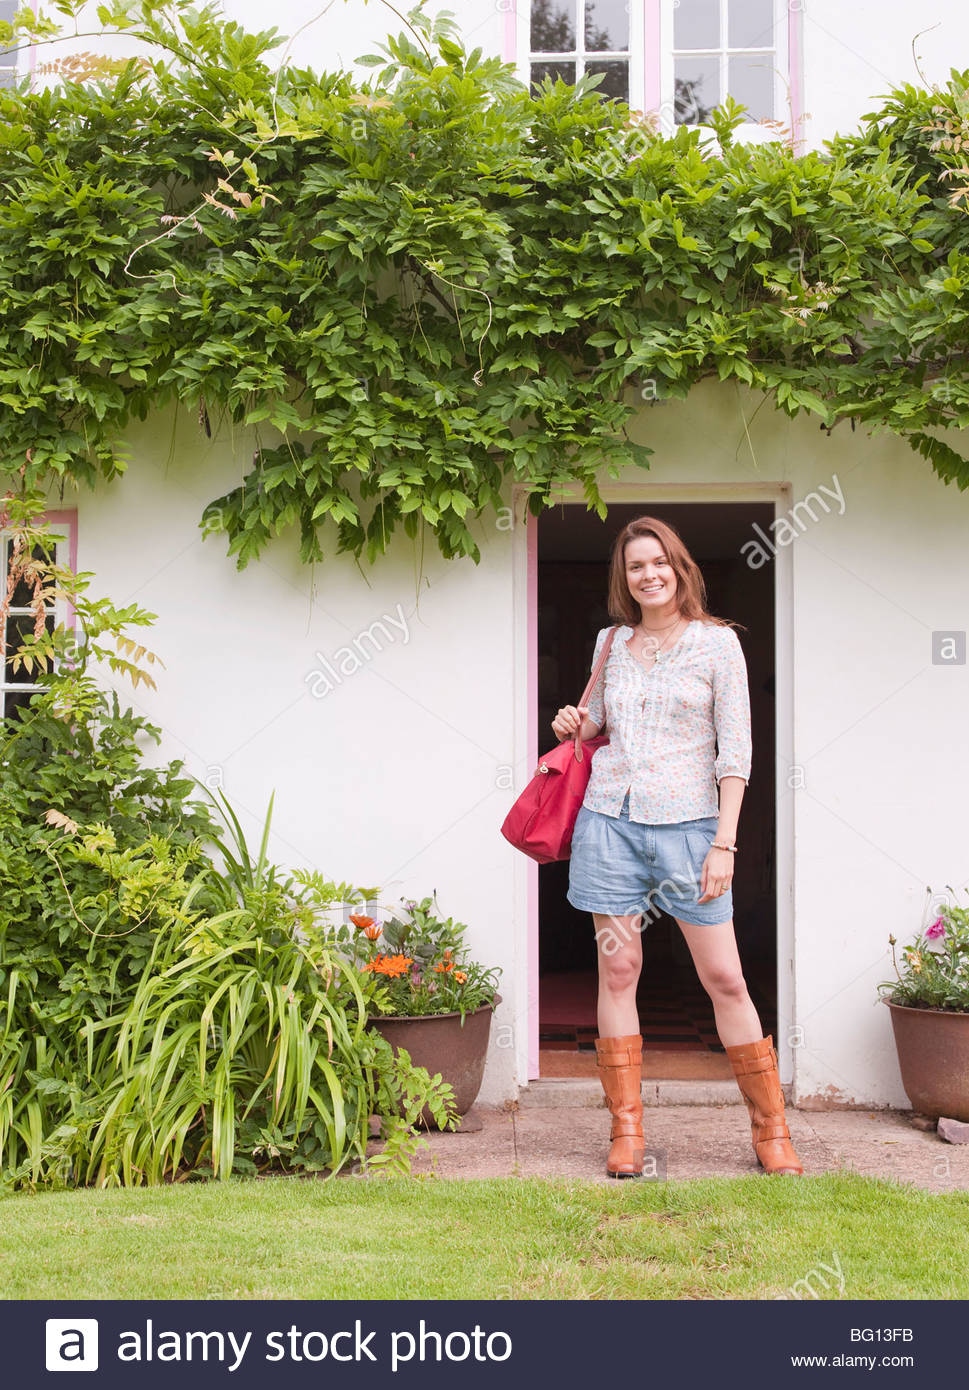 woman by front door of house - Stock Image